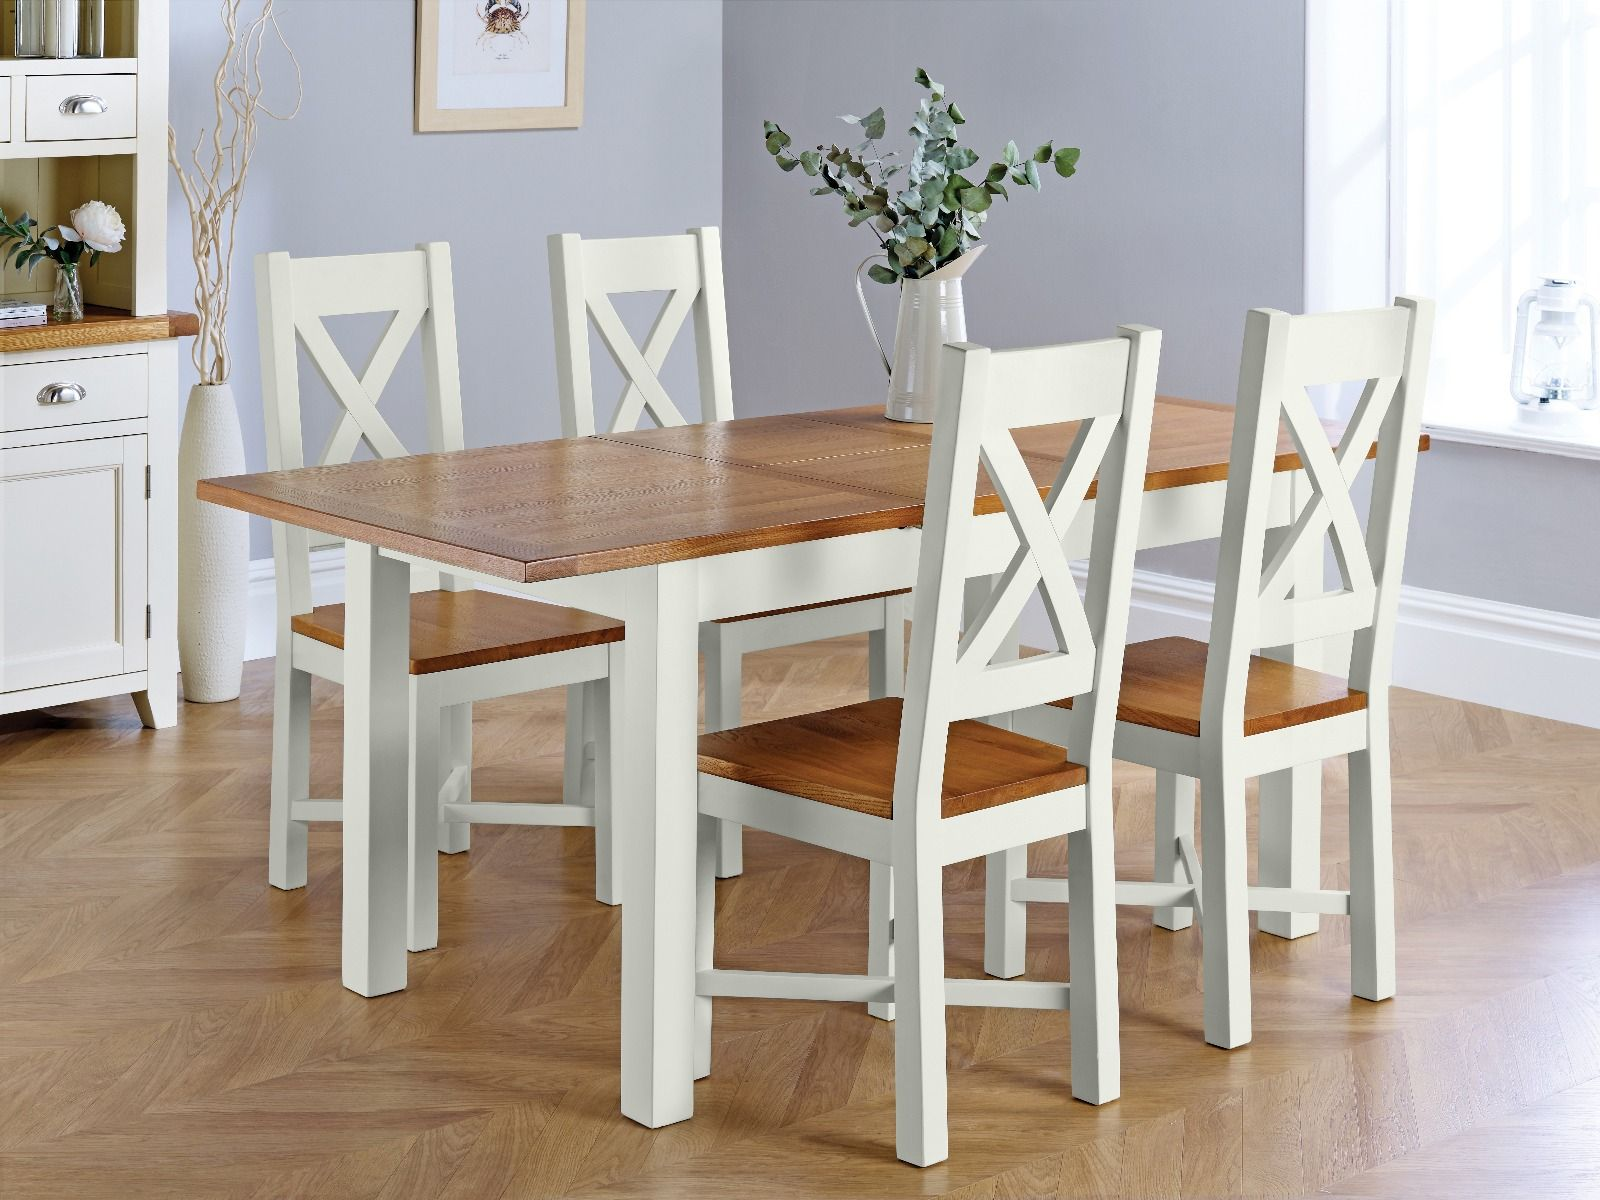 Dining Room Chairs Set Of 4 Country Oak 180cm Grey Painted Extending Dining Table And 4 Grasmere Grey Painted Chairs